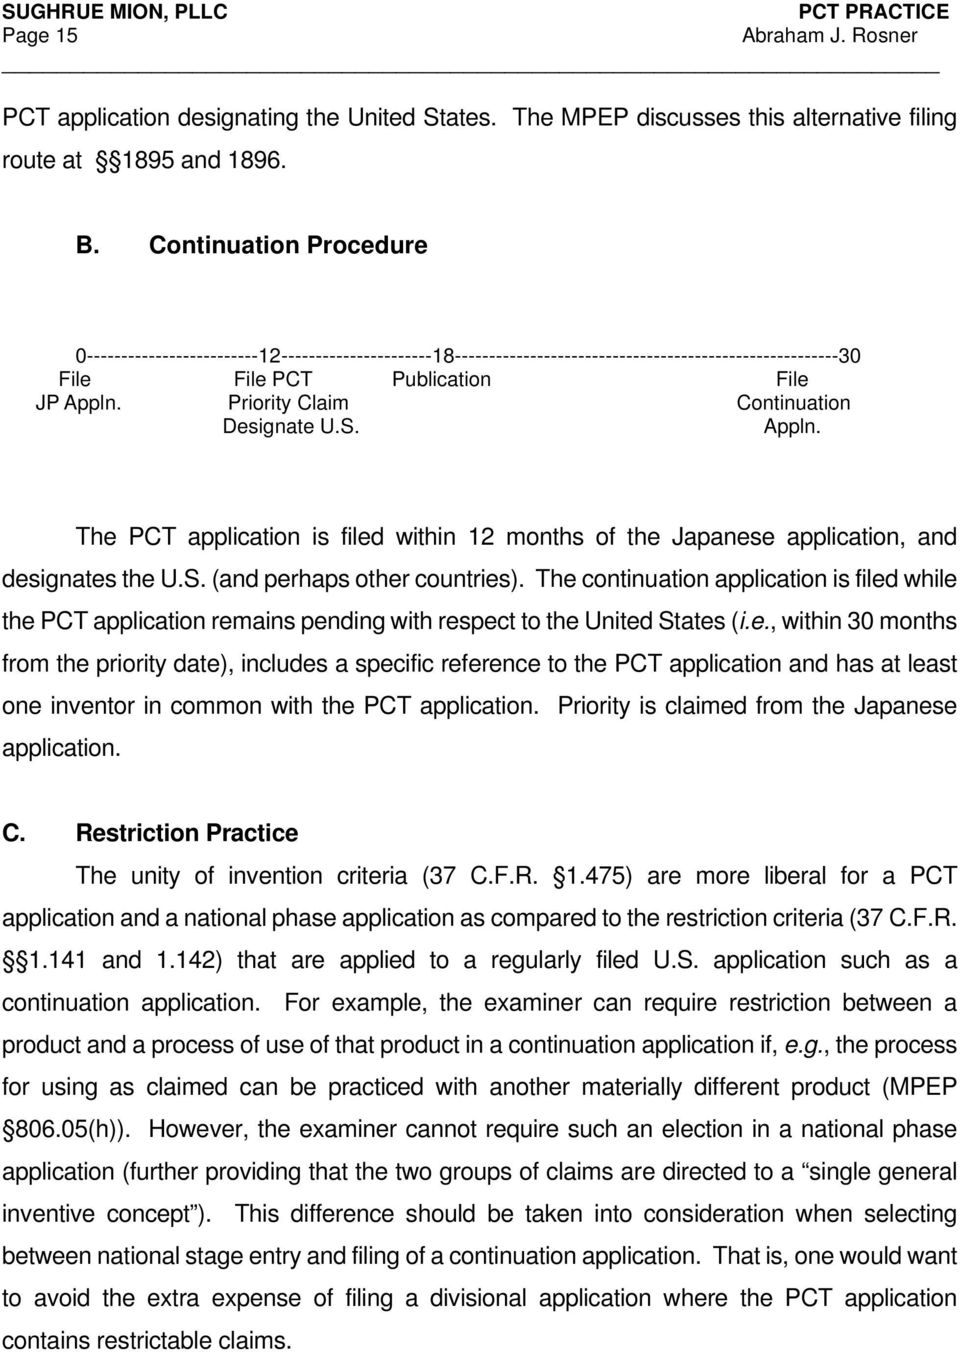 Priority Claim Continuation Designate U.S. Appln. The PCT application is filed within 12 months of the Japanese application, and designates the U.S. (and perhaps other countries).